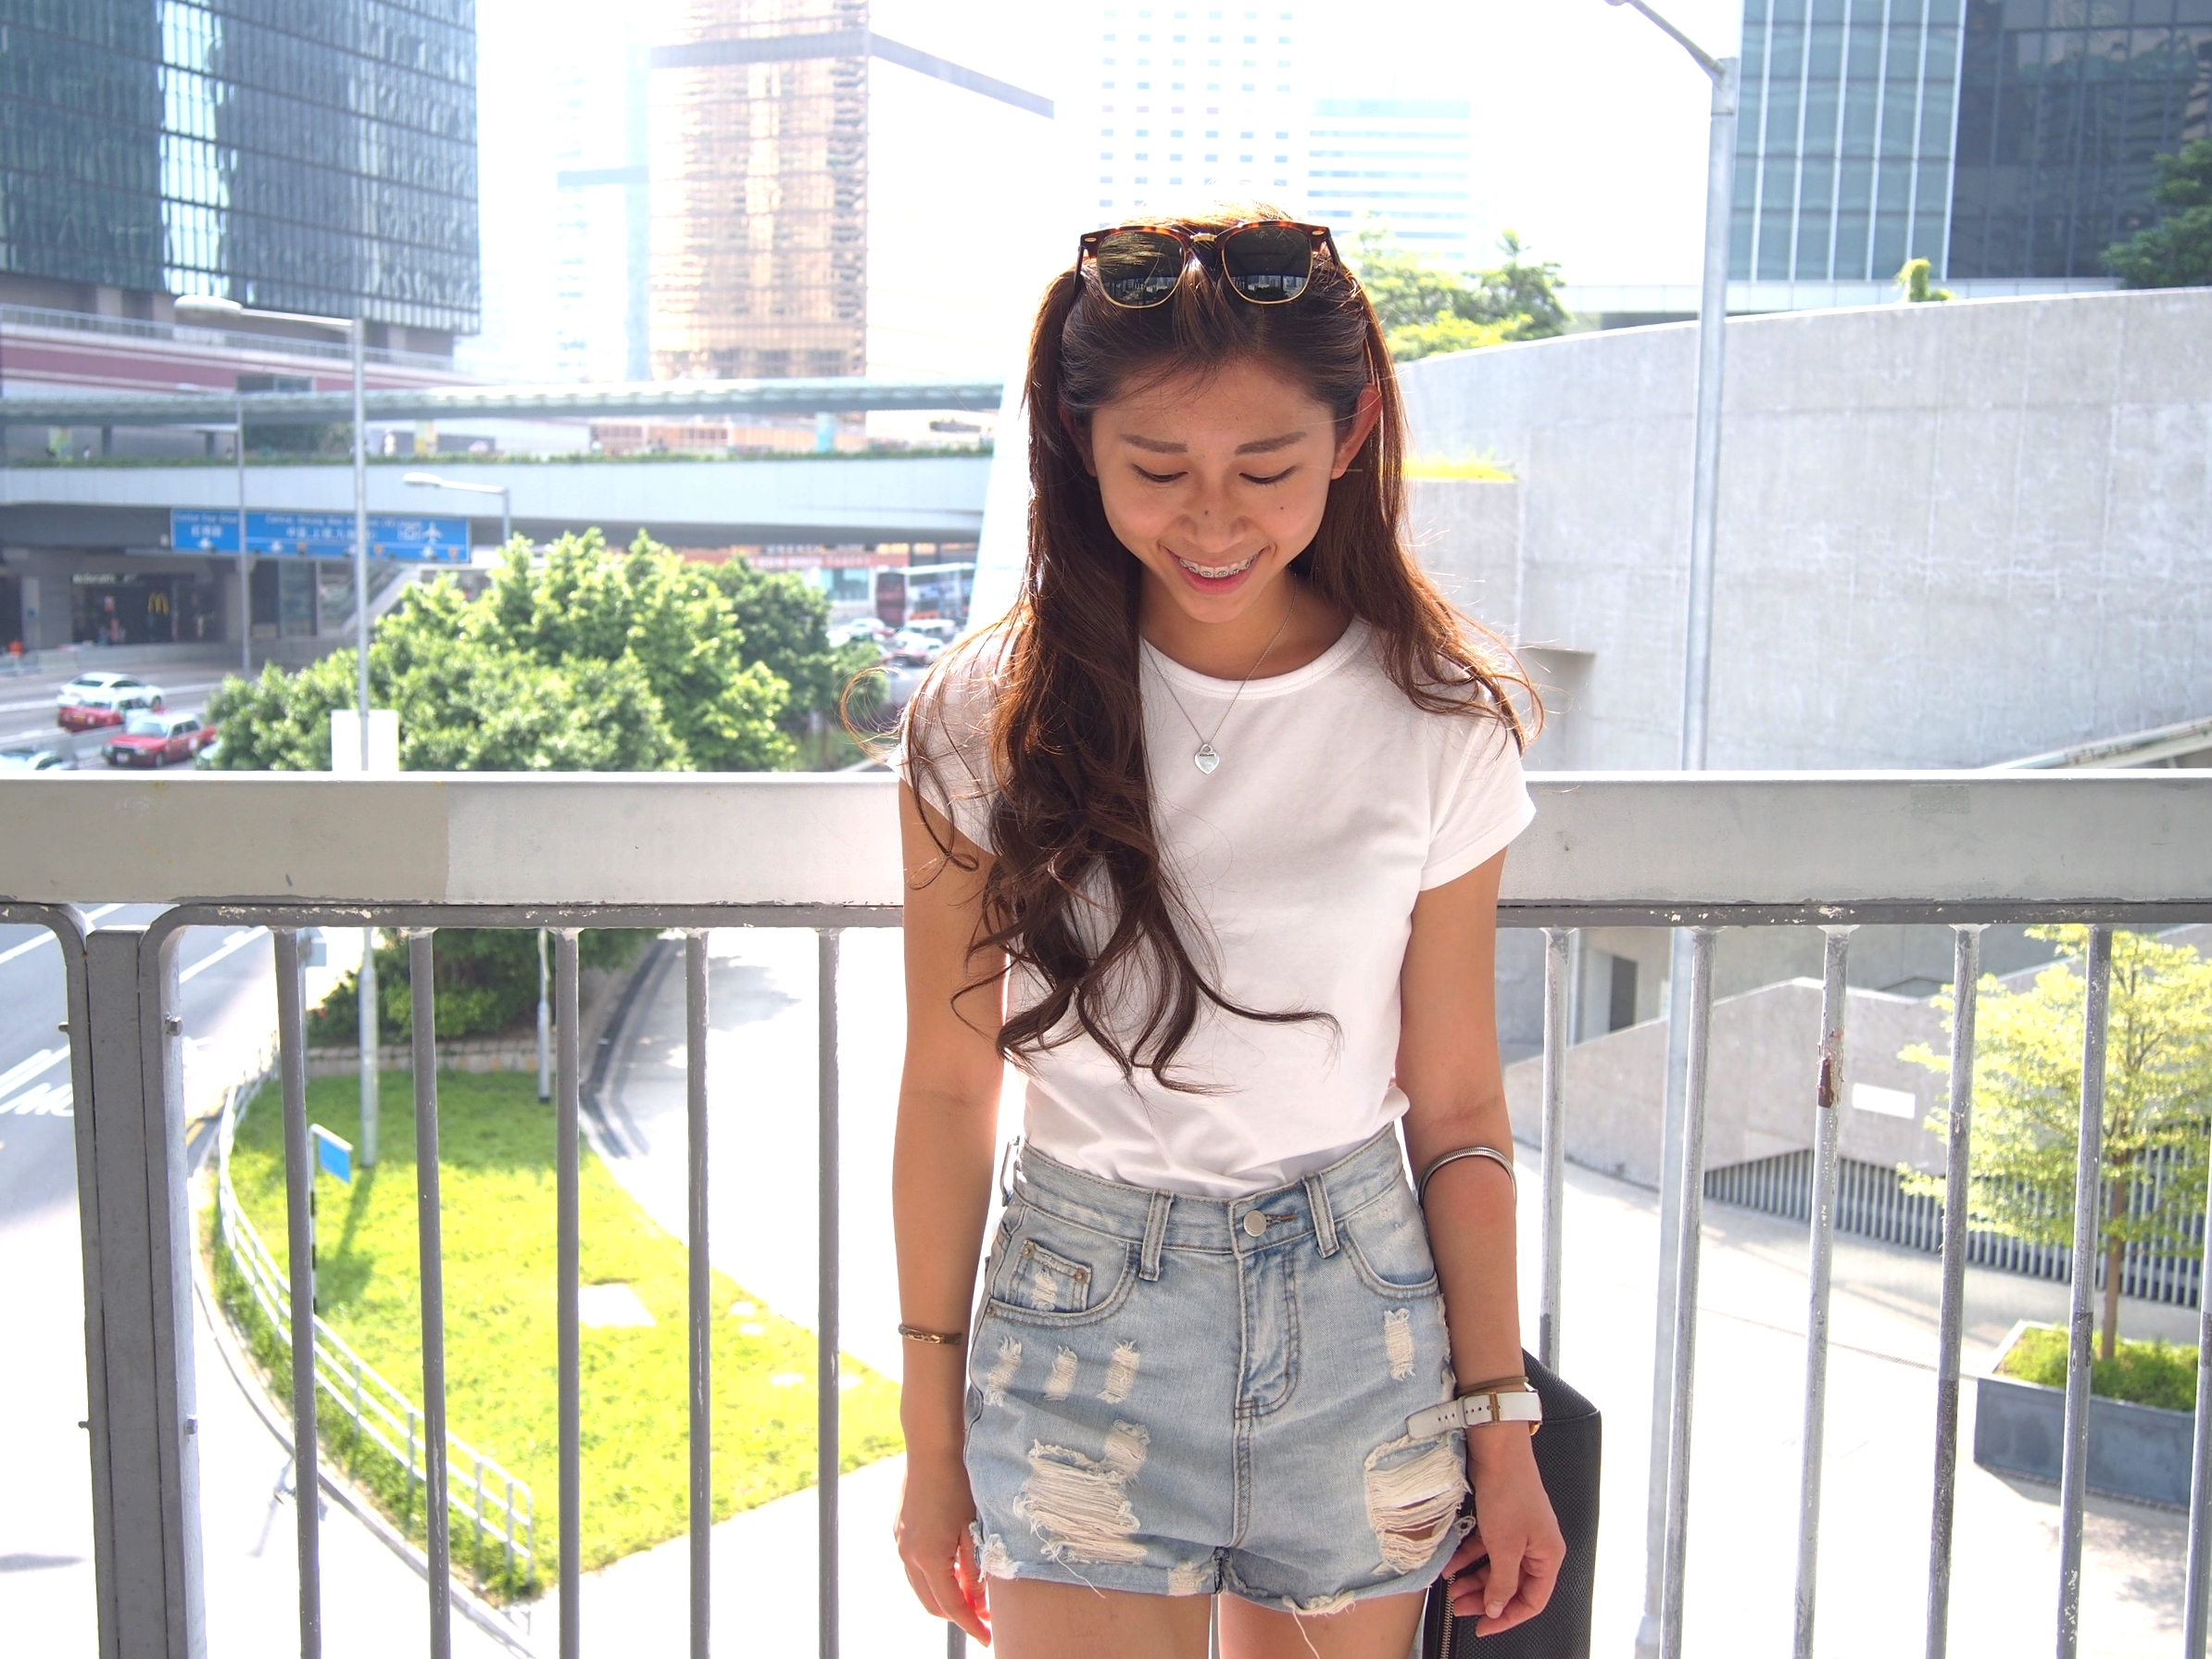 H&M white tee / Ripped denim shorts / Vans white leather loafers / Alexander Wang clutch